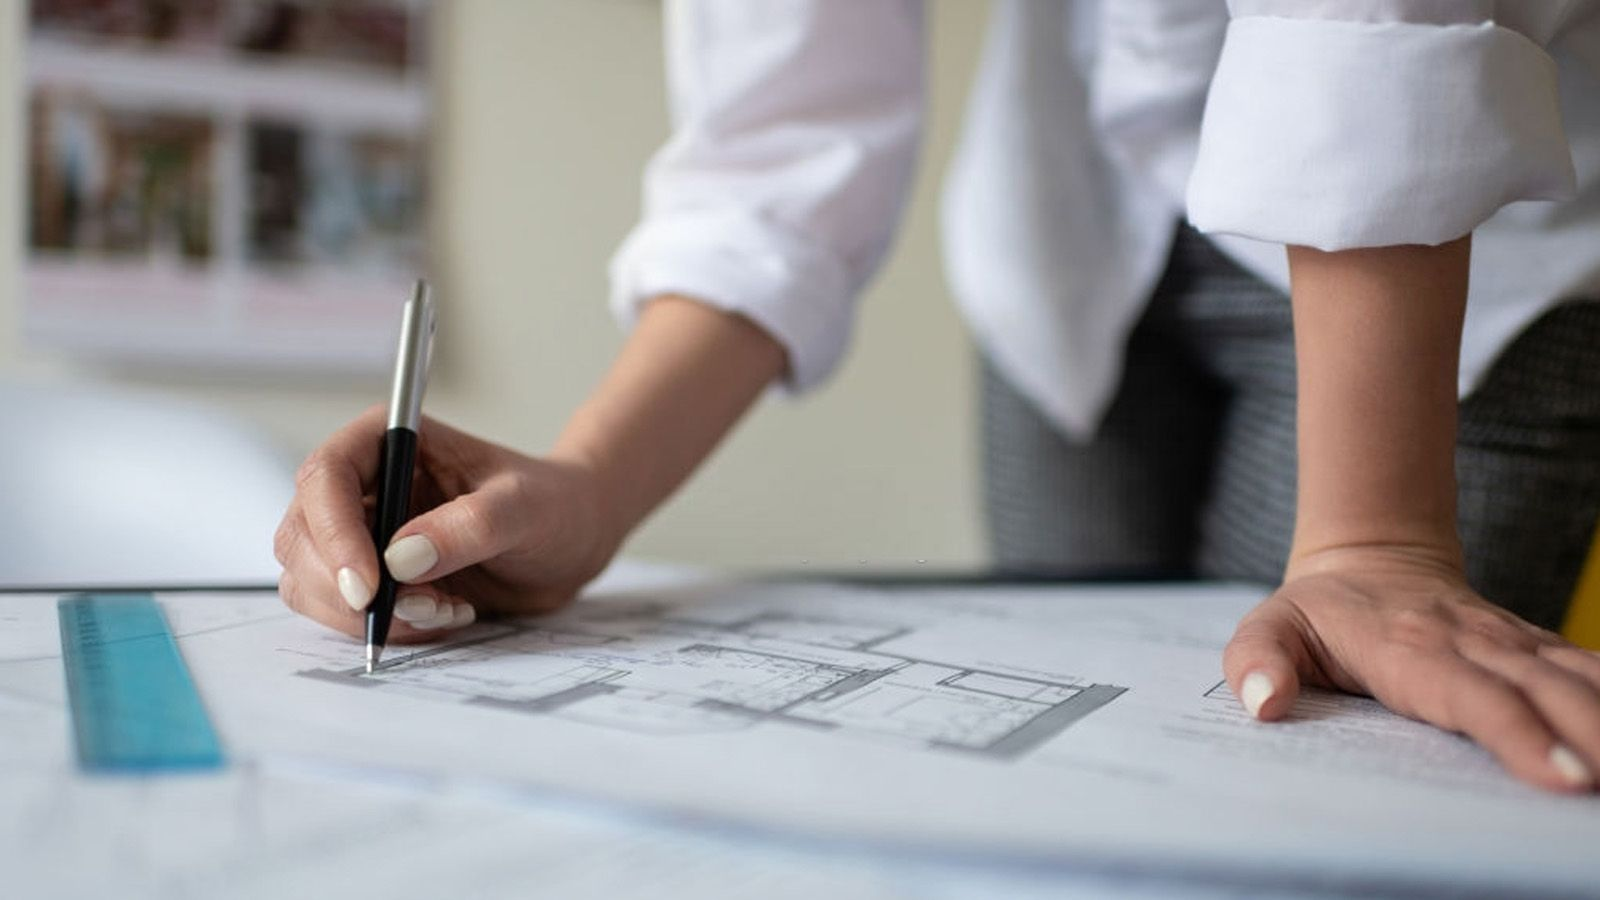 Informal pre-application discussion before submitting a planning application